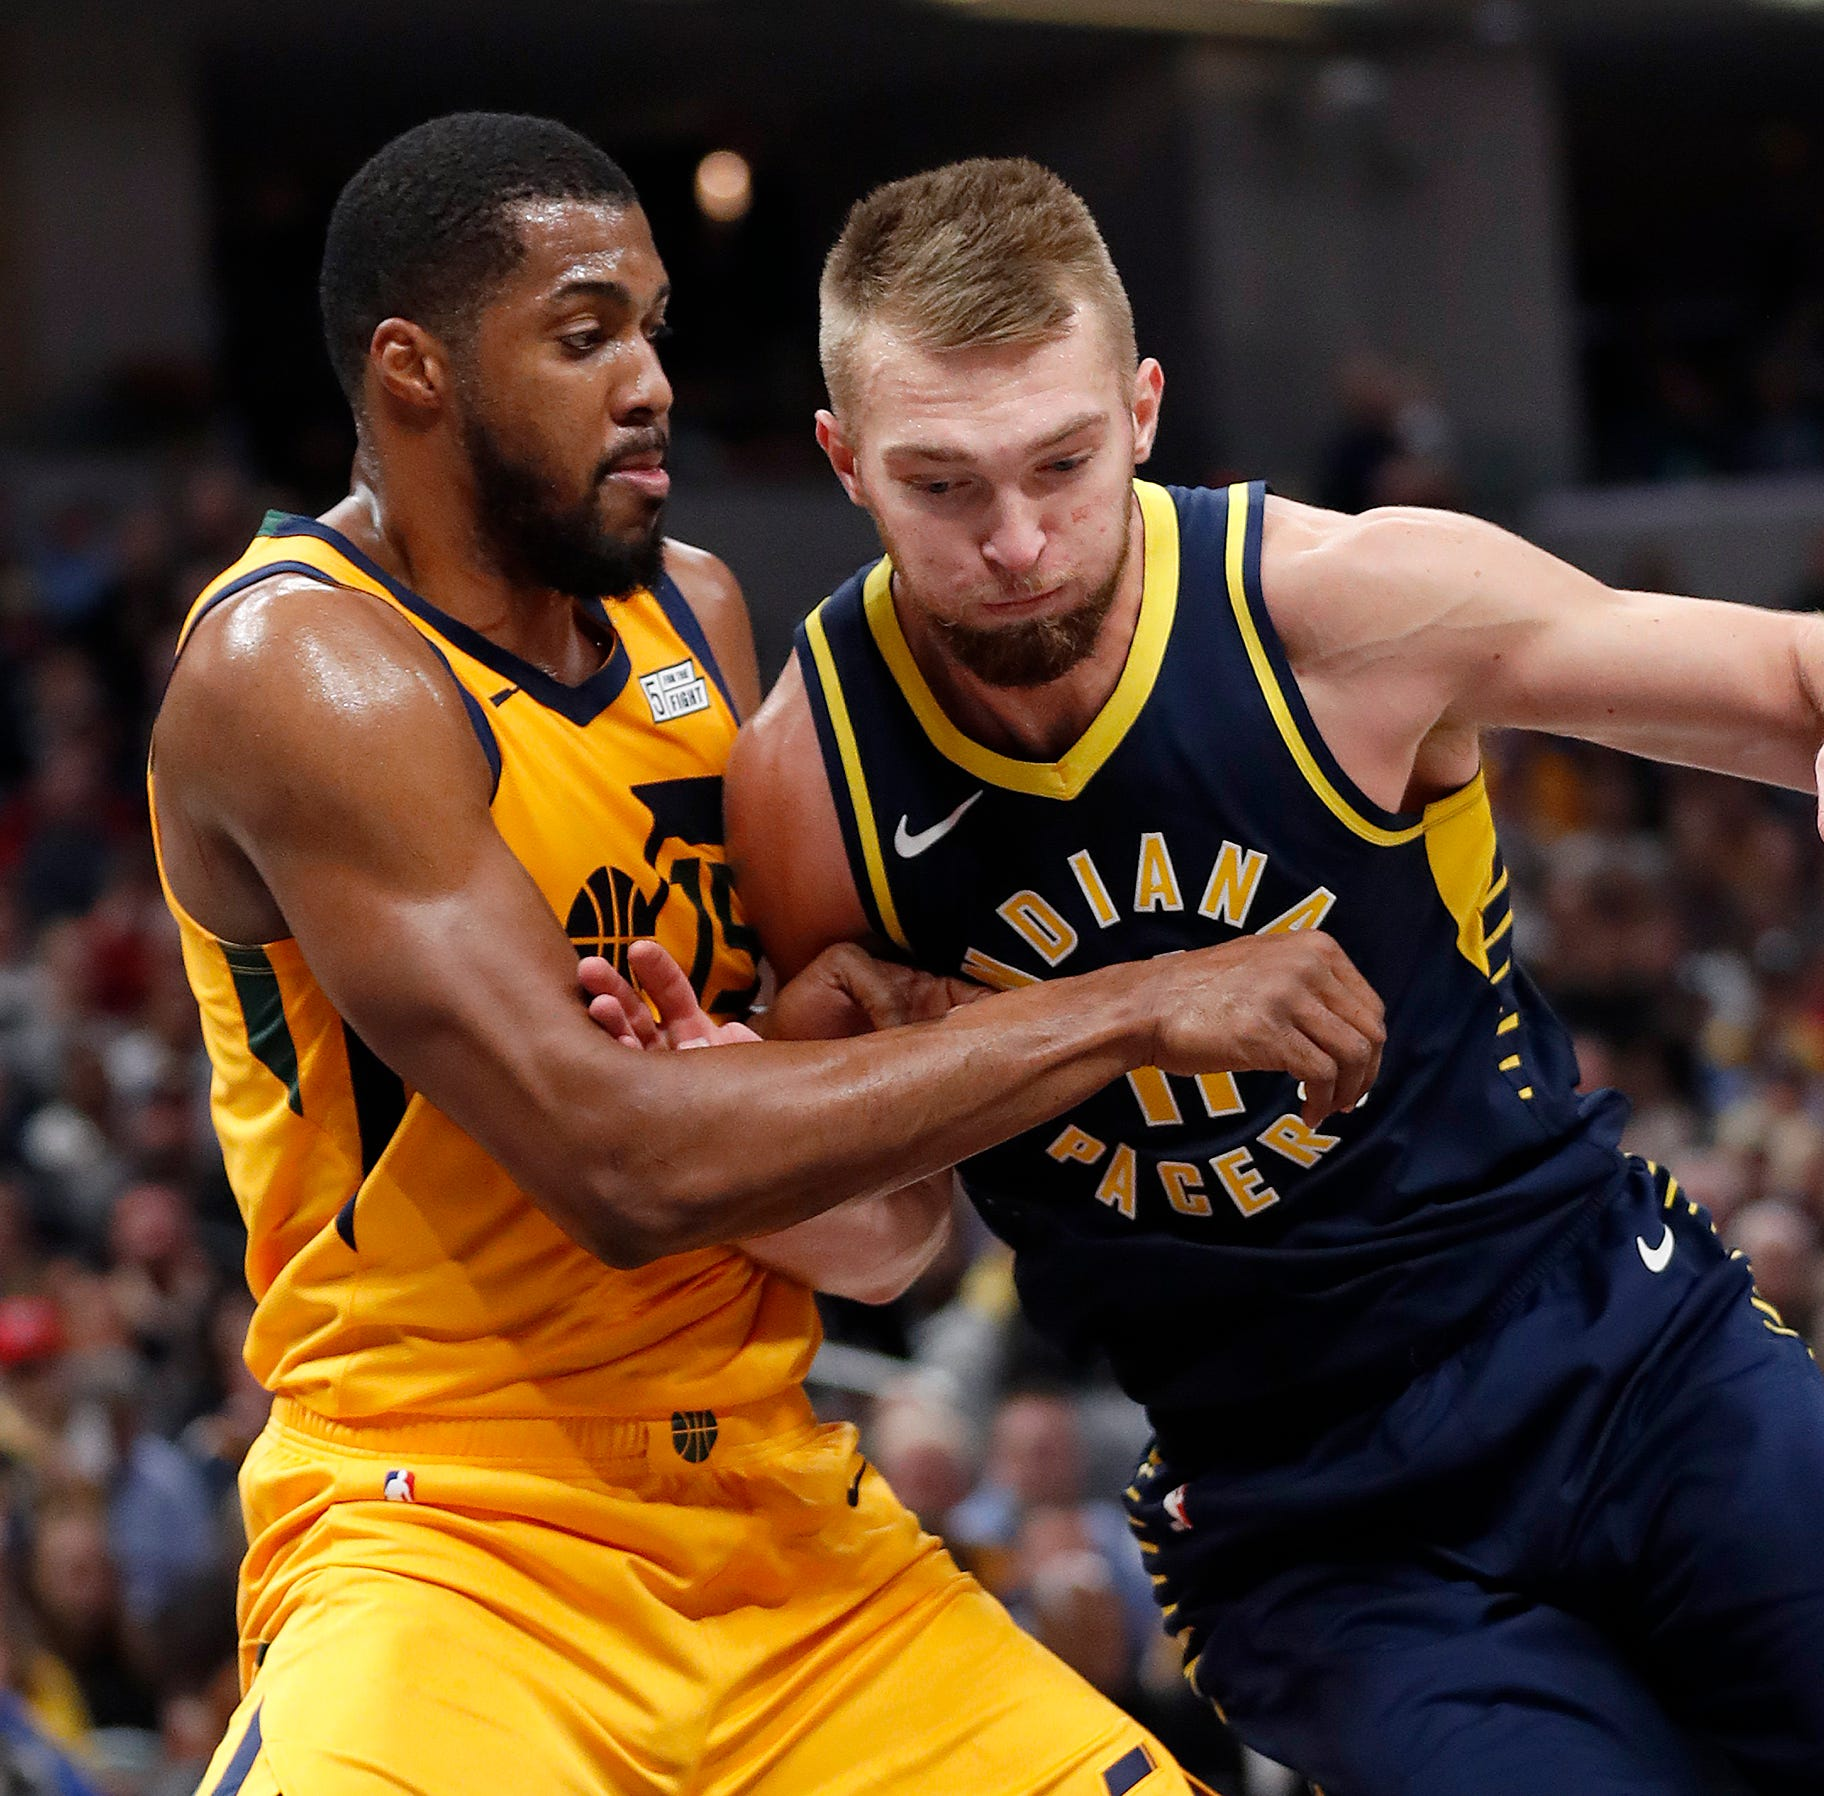 No Vic, no sweat: Pacers steamroll Jazz 121-94